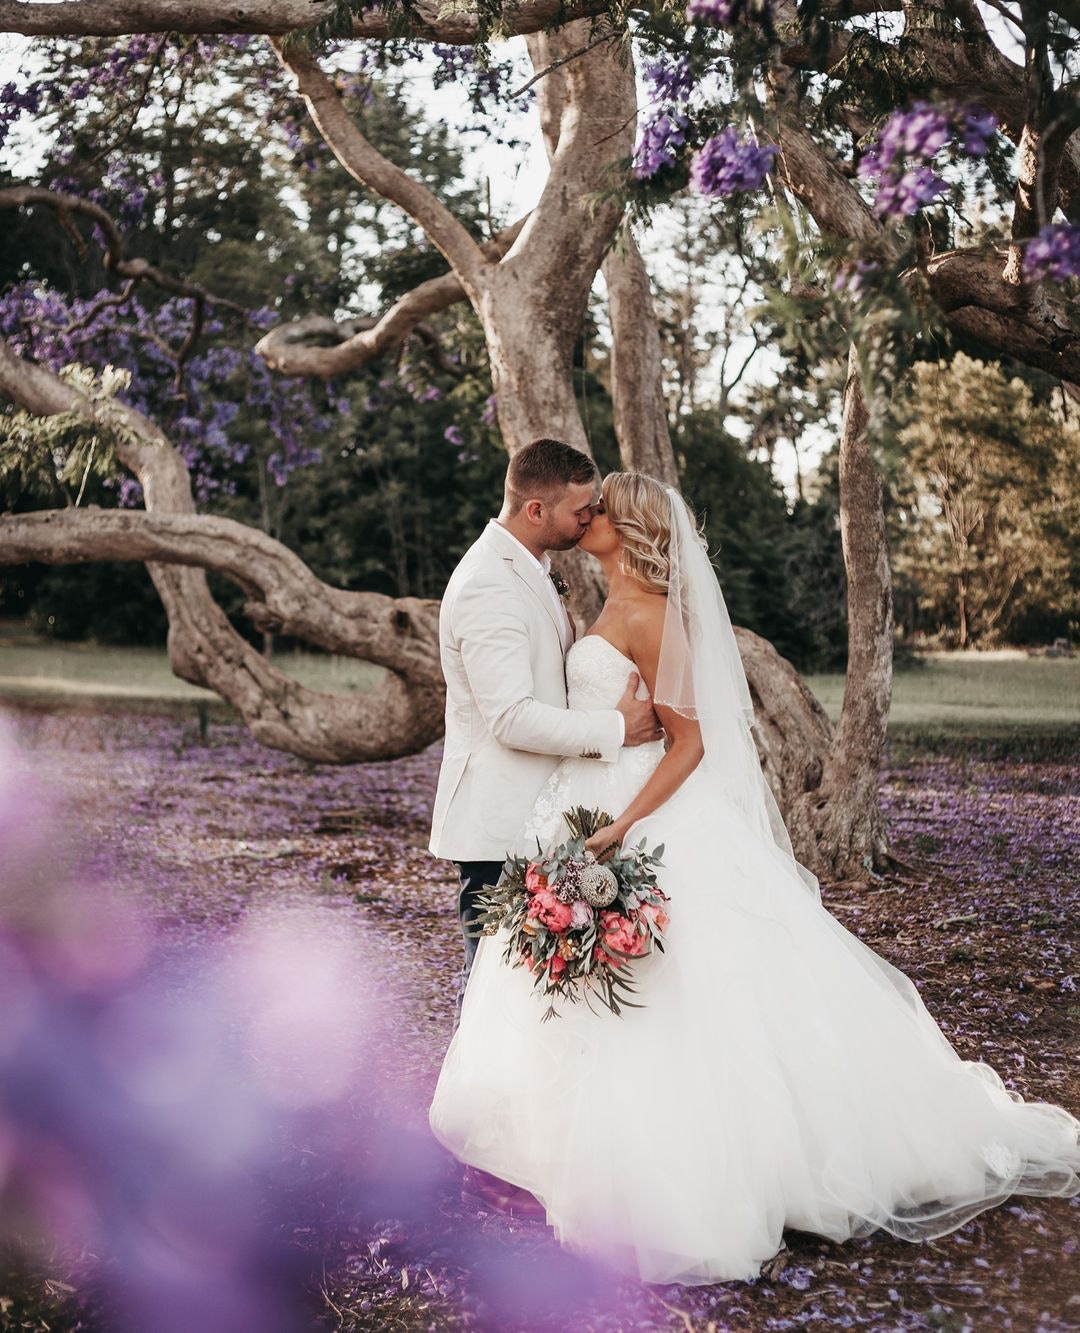 Bride and groom kissing under Jacaranda tree